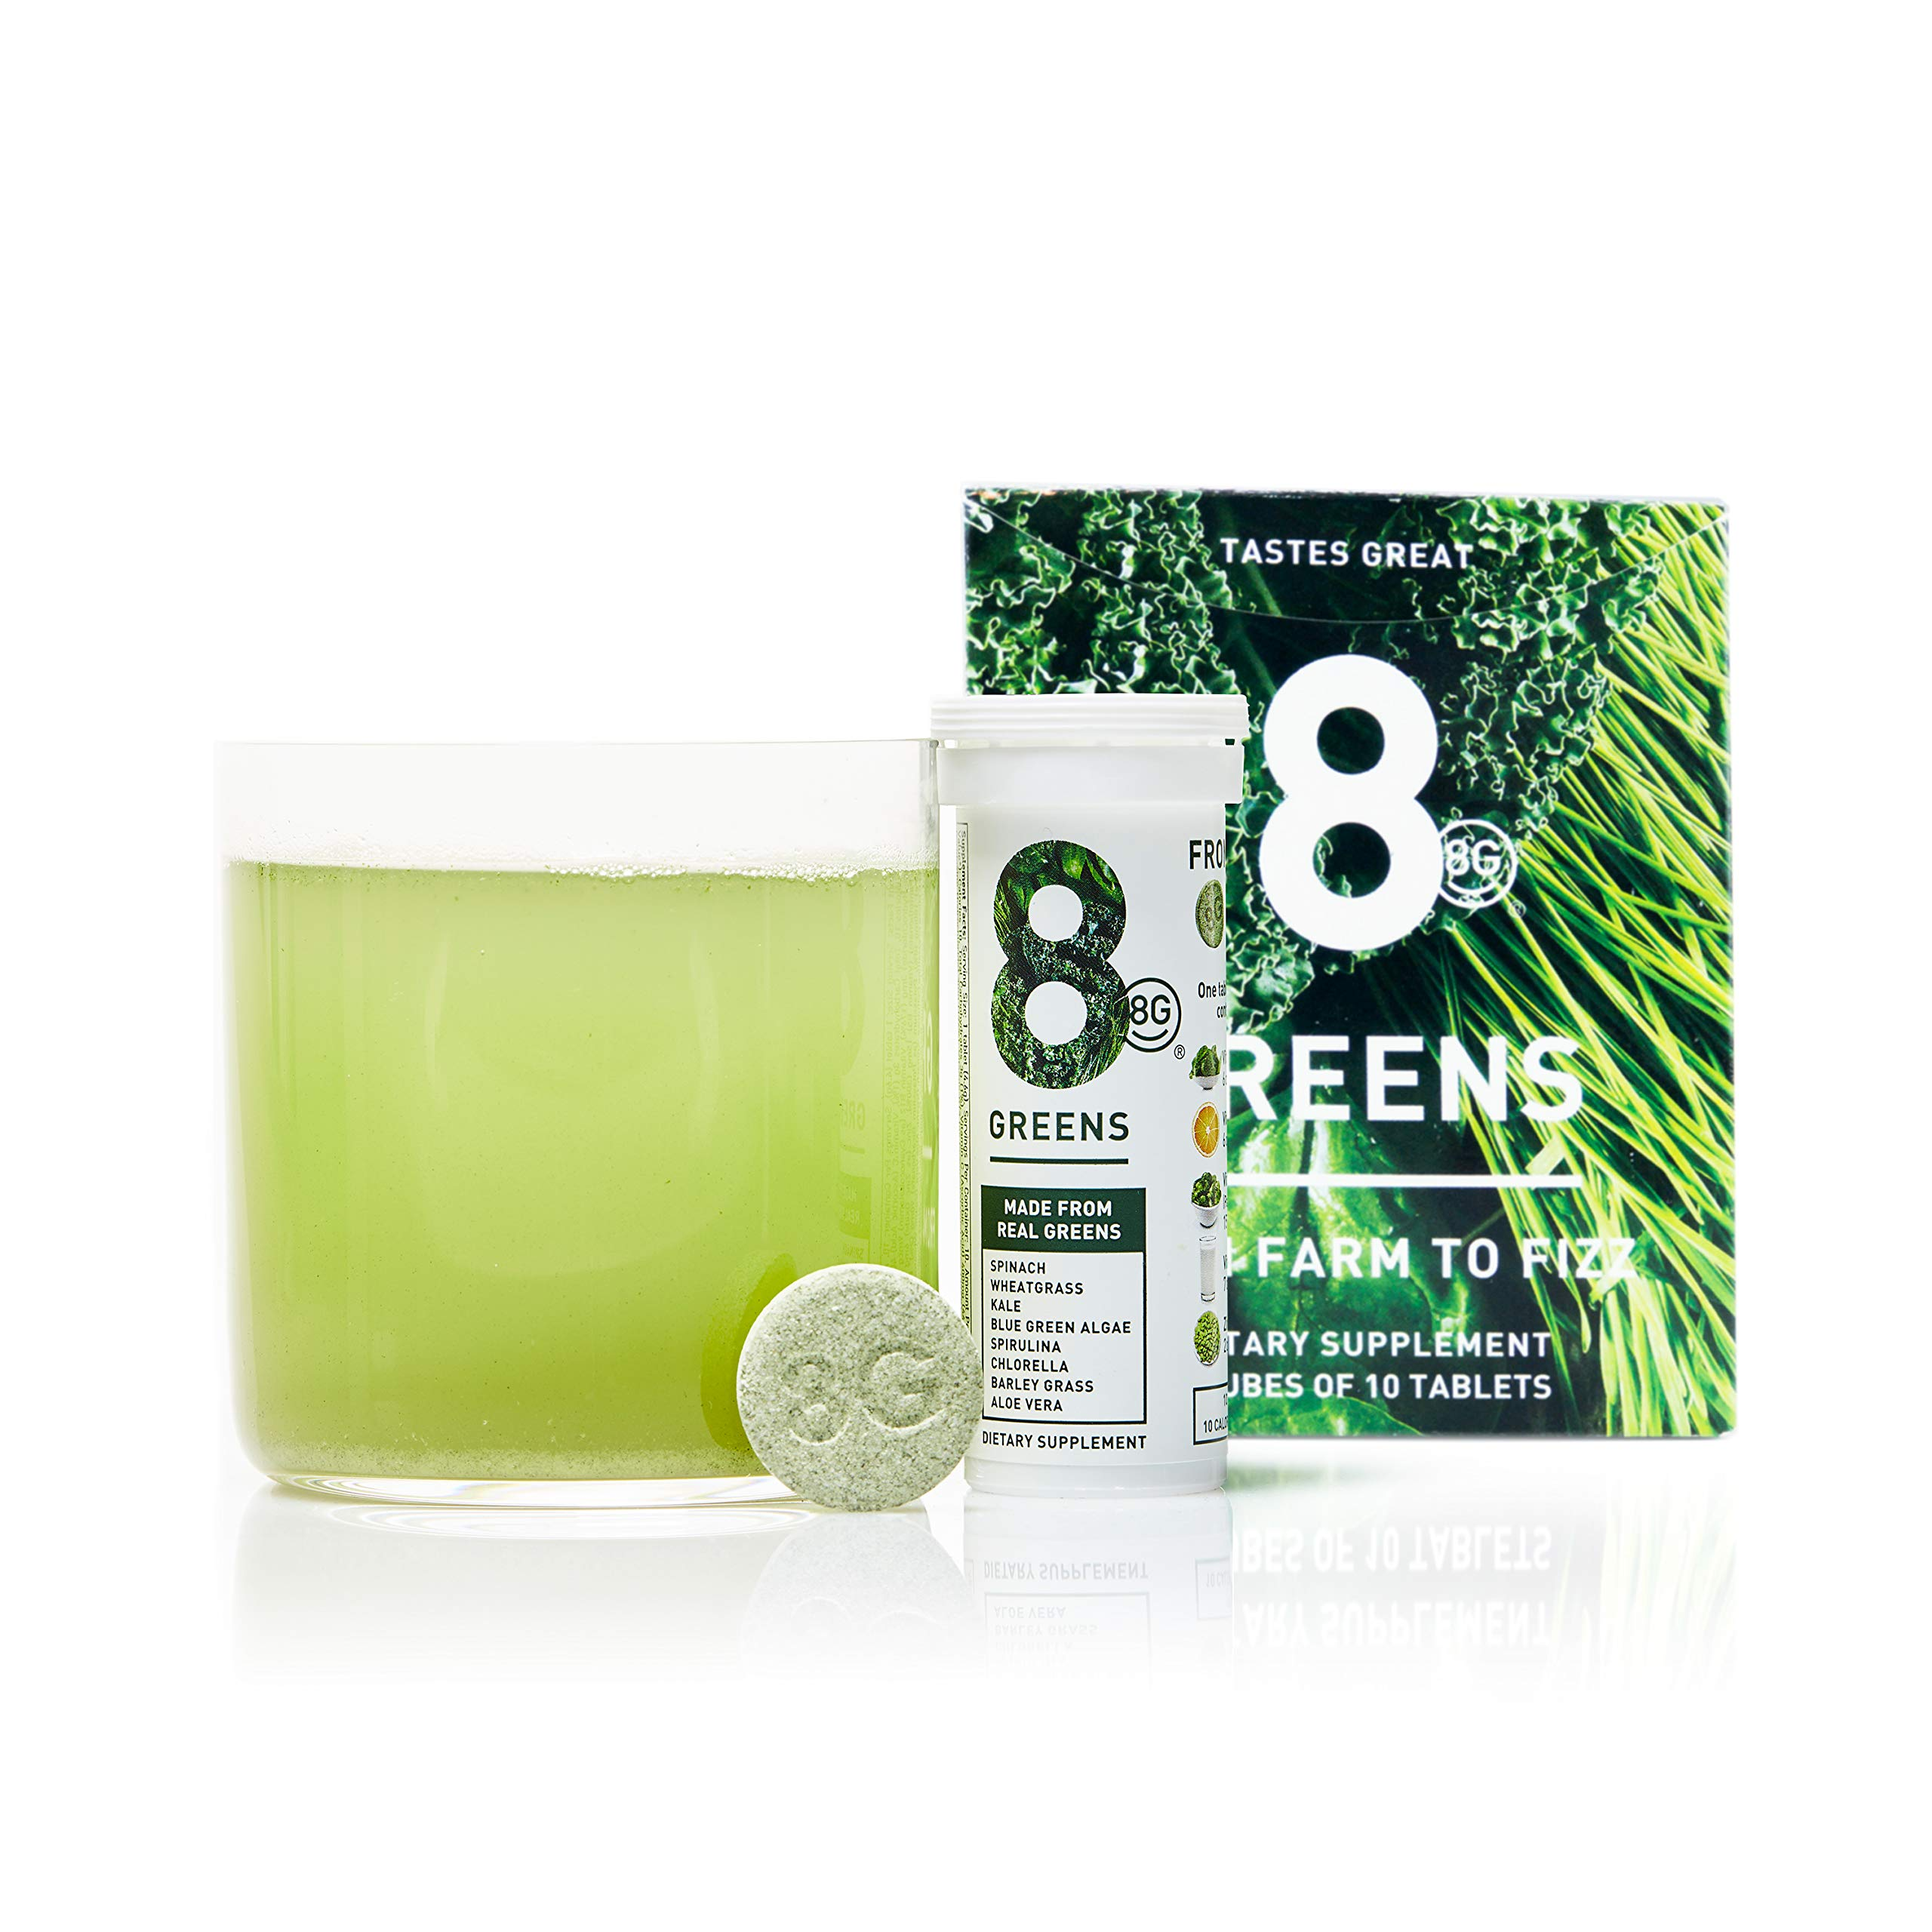 8Greens Effervescent Super Greens Dietary Supplement - 8 Essential Healthy Real Greens in One (6 Tubes / 60 Tablets) by 8Greens